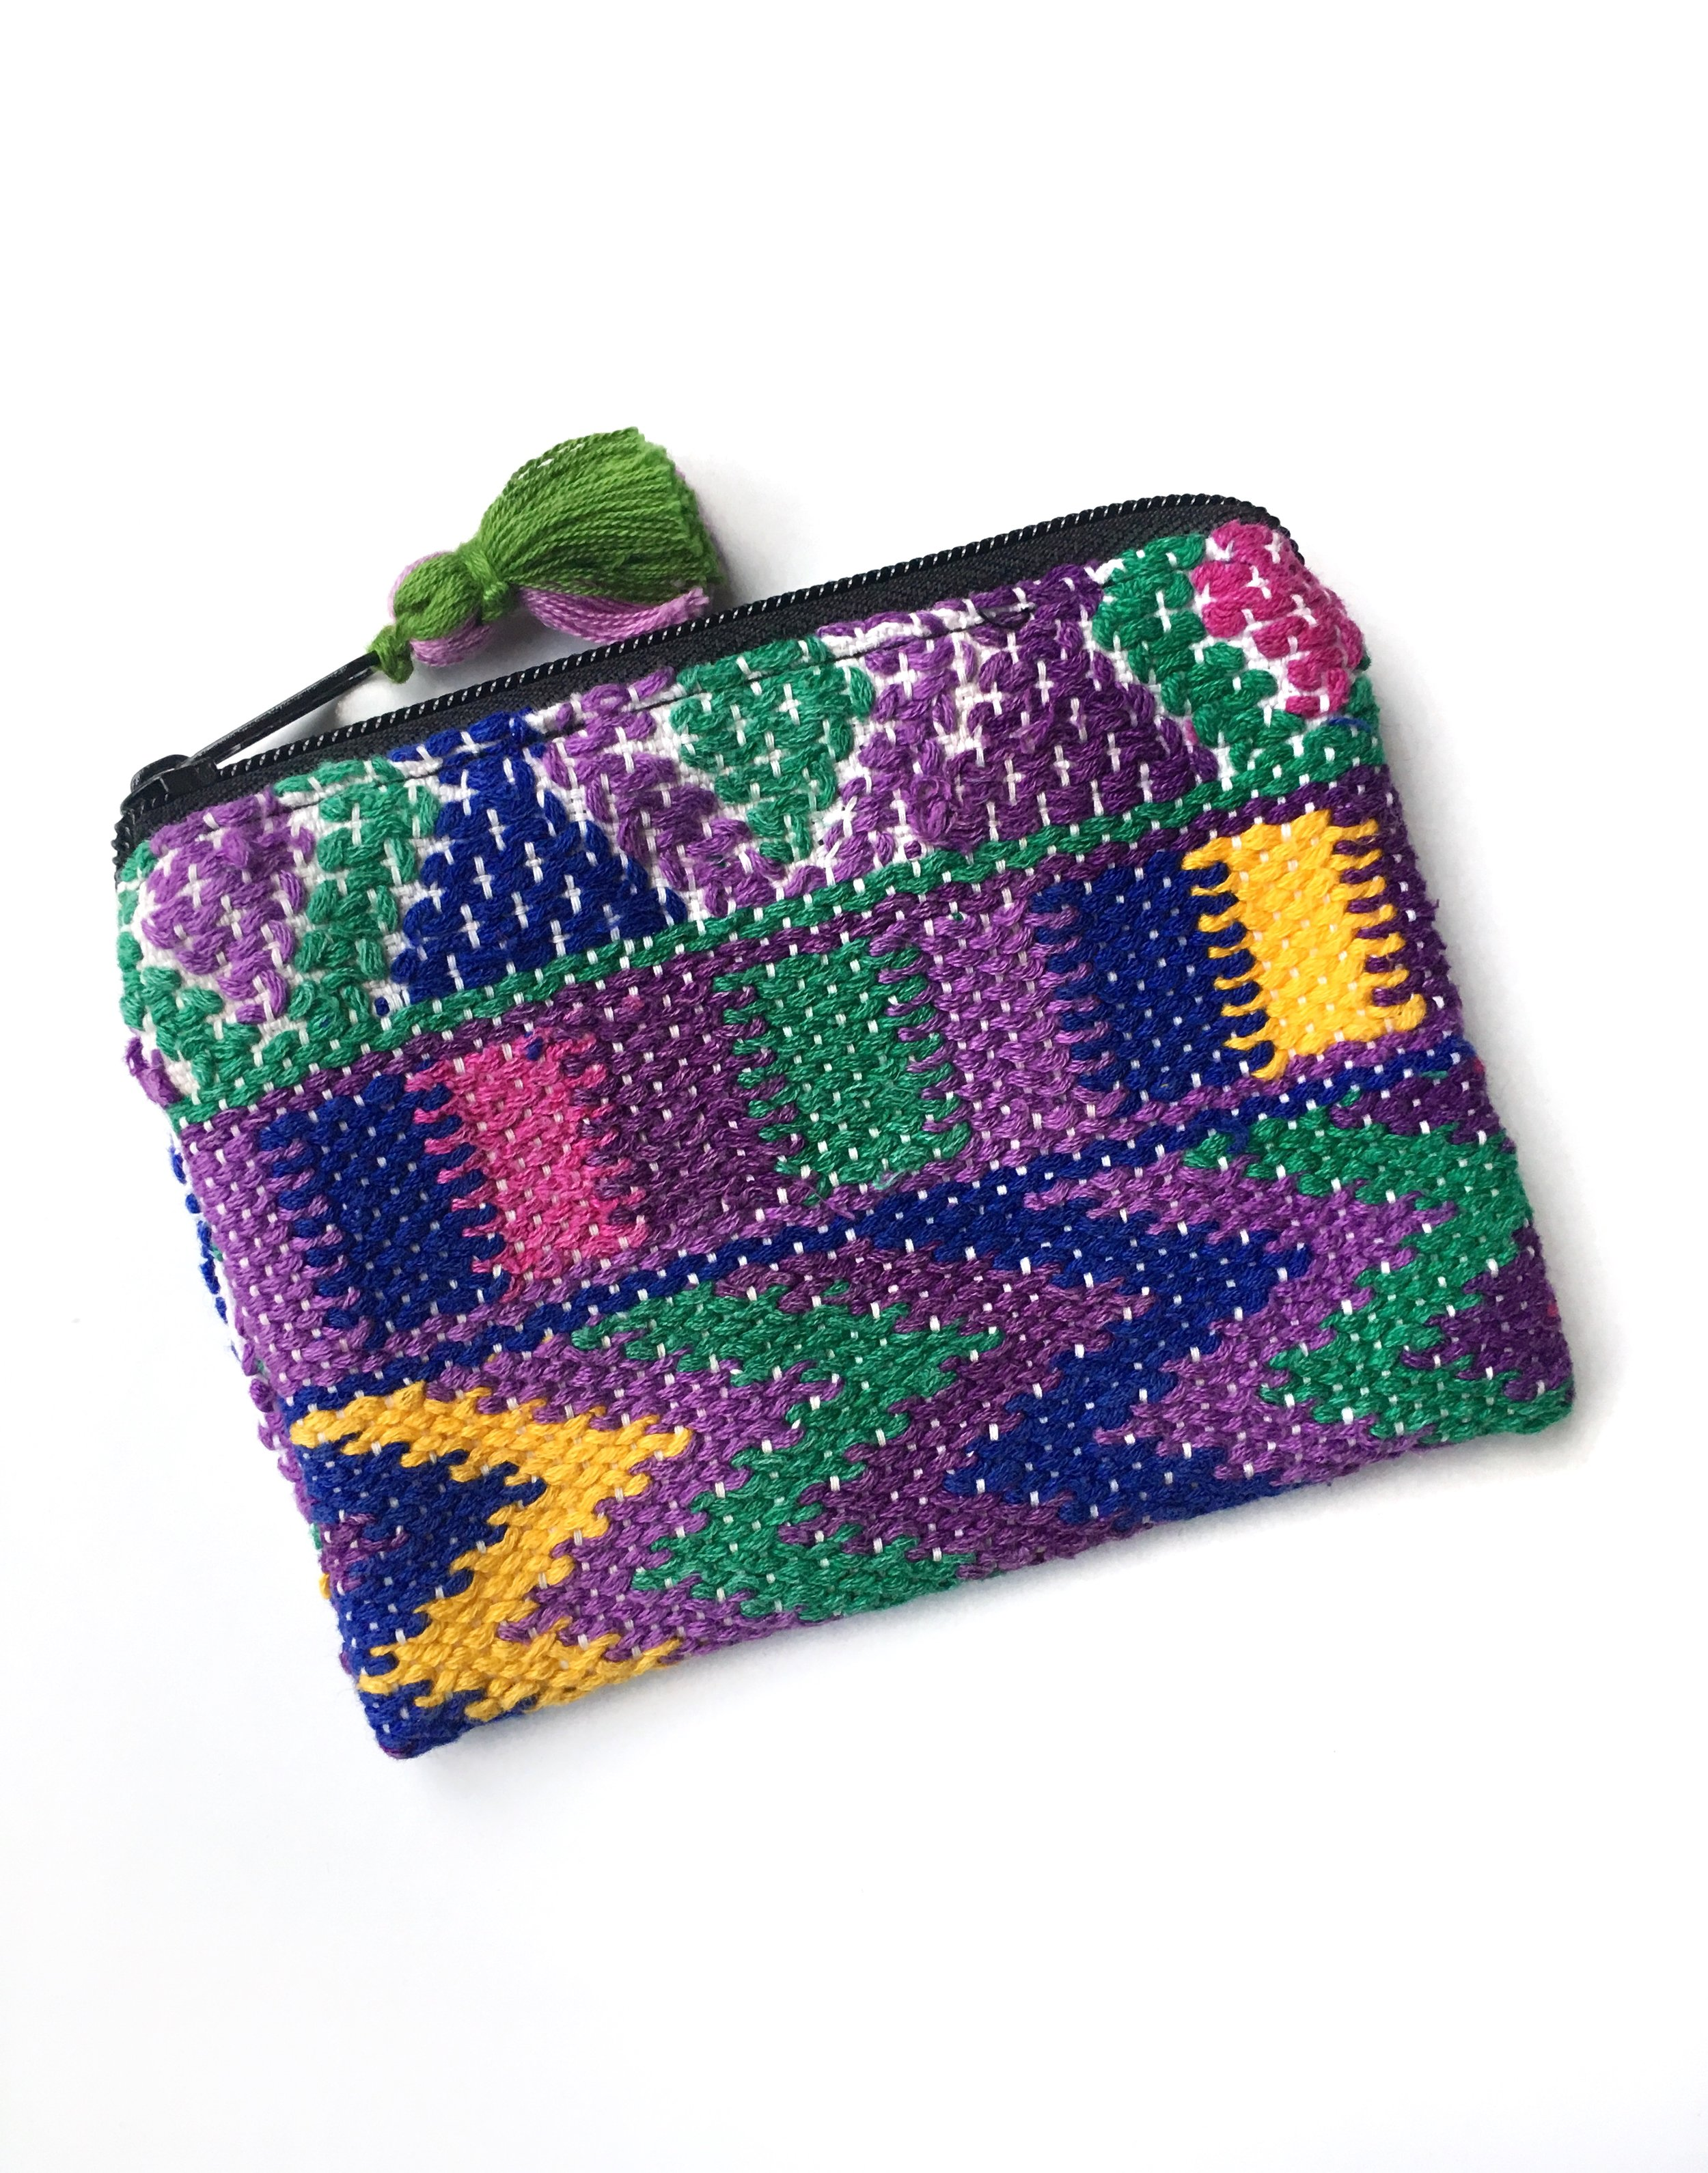 NOMAD COIN POUCH - FIESTA